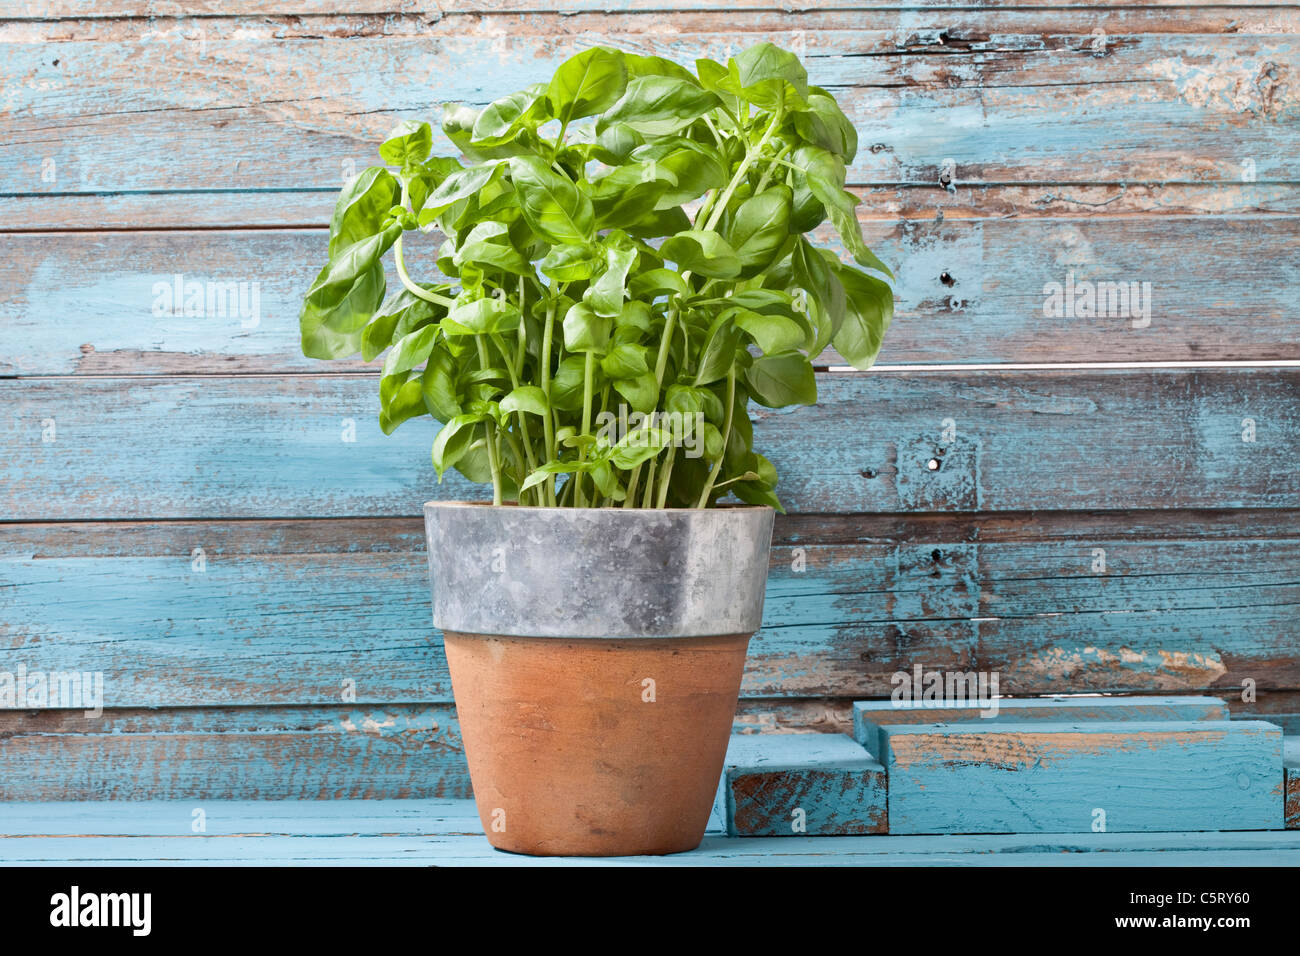 Close up of basil plant in pot - Stock Image